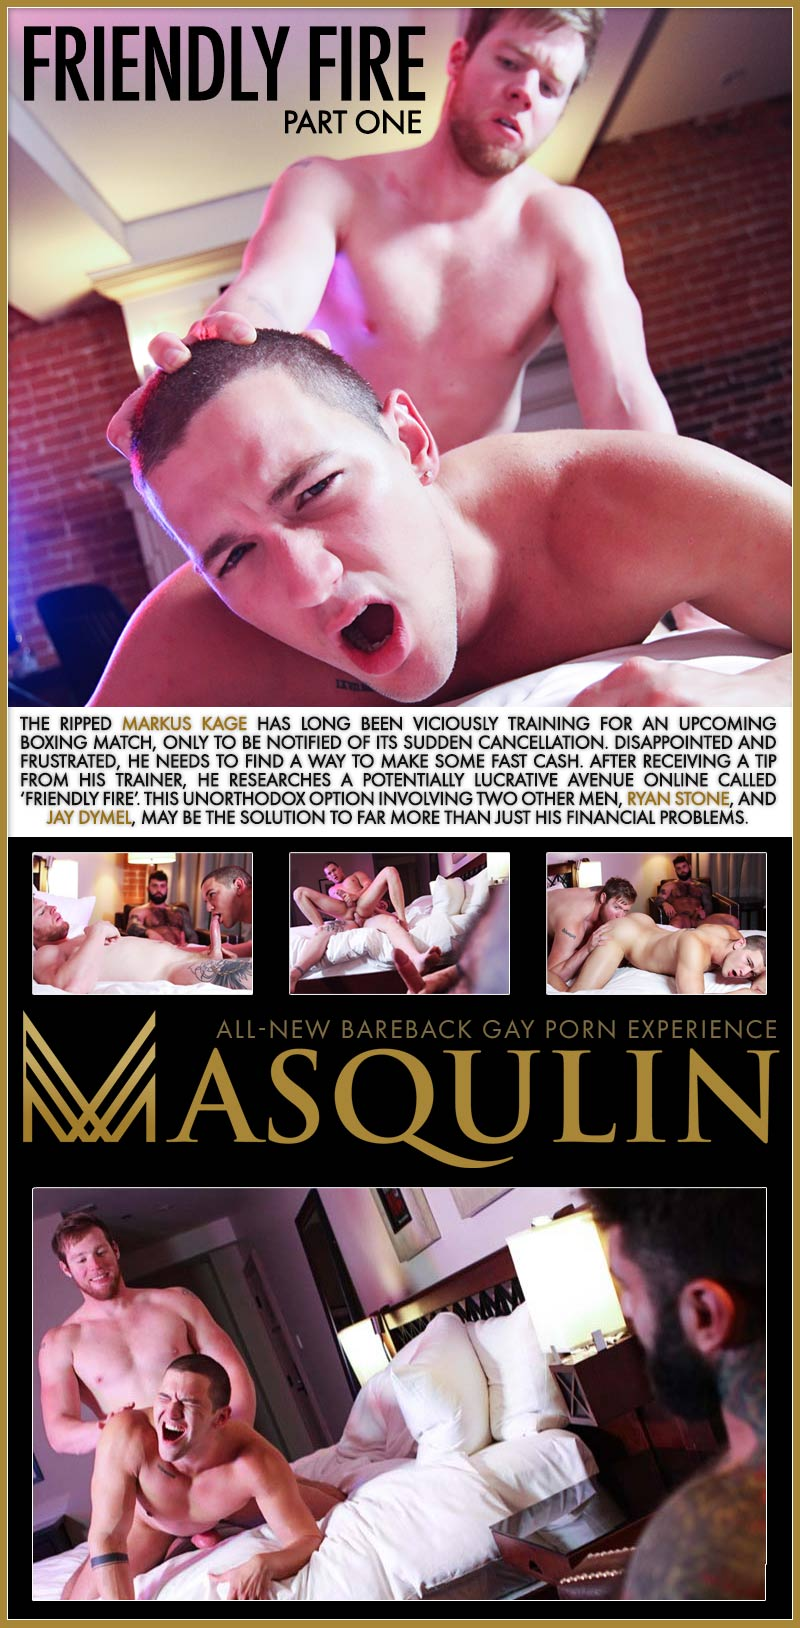 Friendly Fire, Part One (Jay Dymel, Markus Kage and Ryan Stone) at MASQULIN